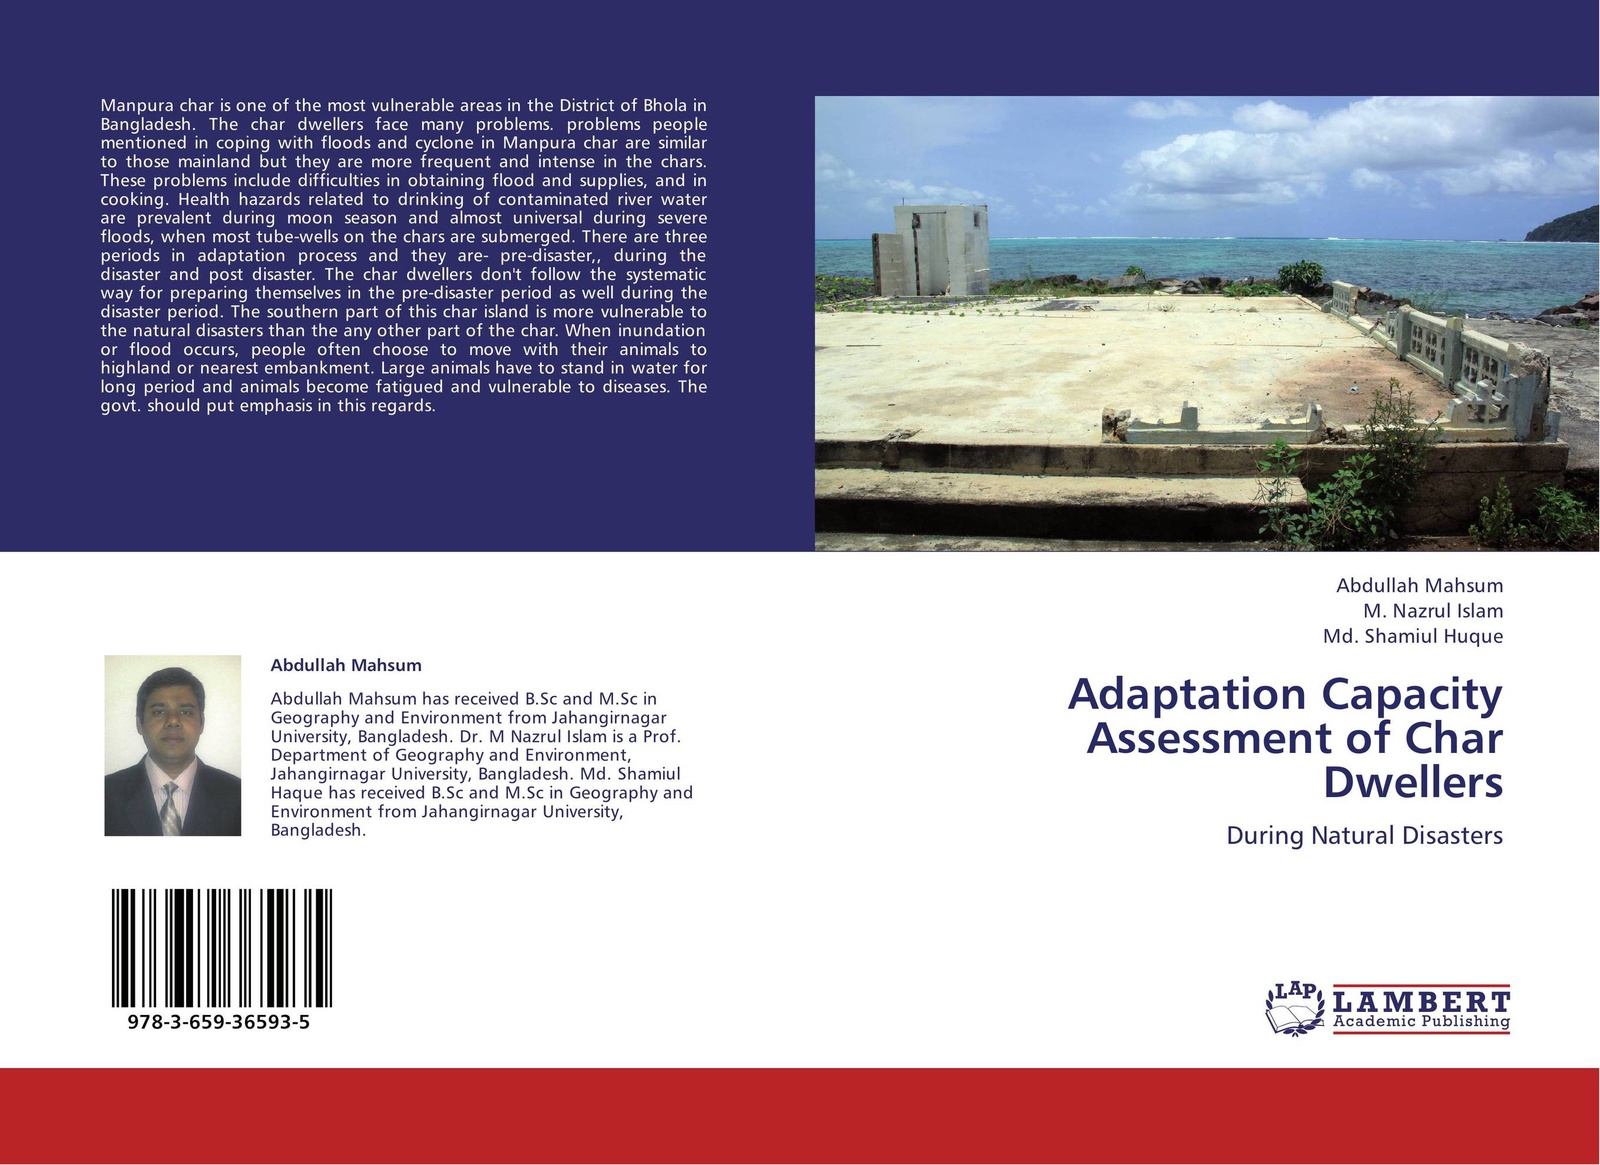 Abdullah Mahsum,M. Nazrul Islam and Md. Shamiul Huque Adaptation Capacity Assessment of Char Dwellers char broil deluxe grid scrub